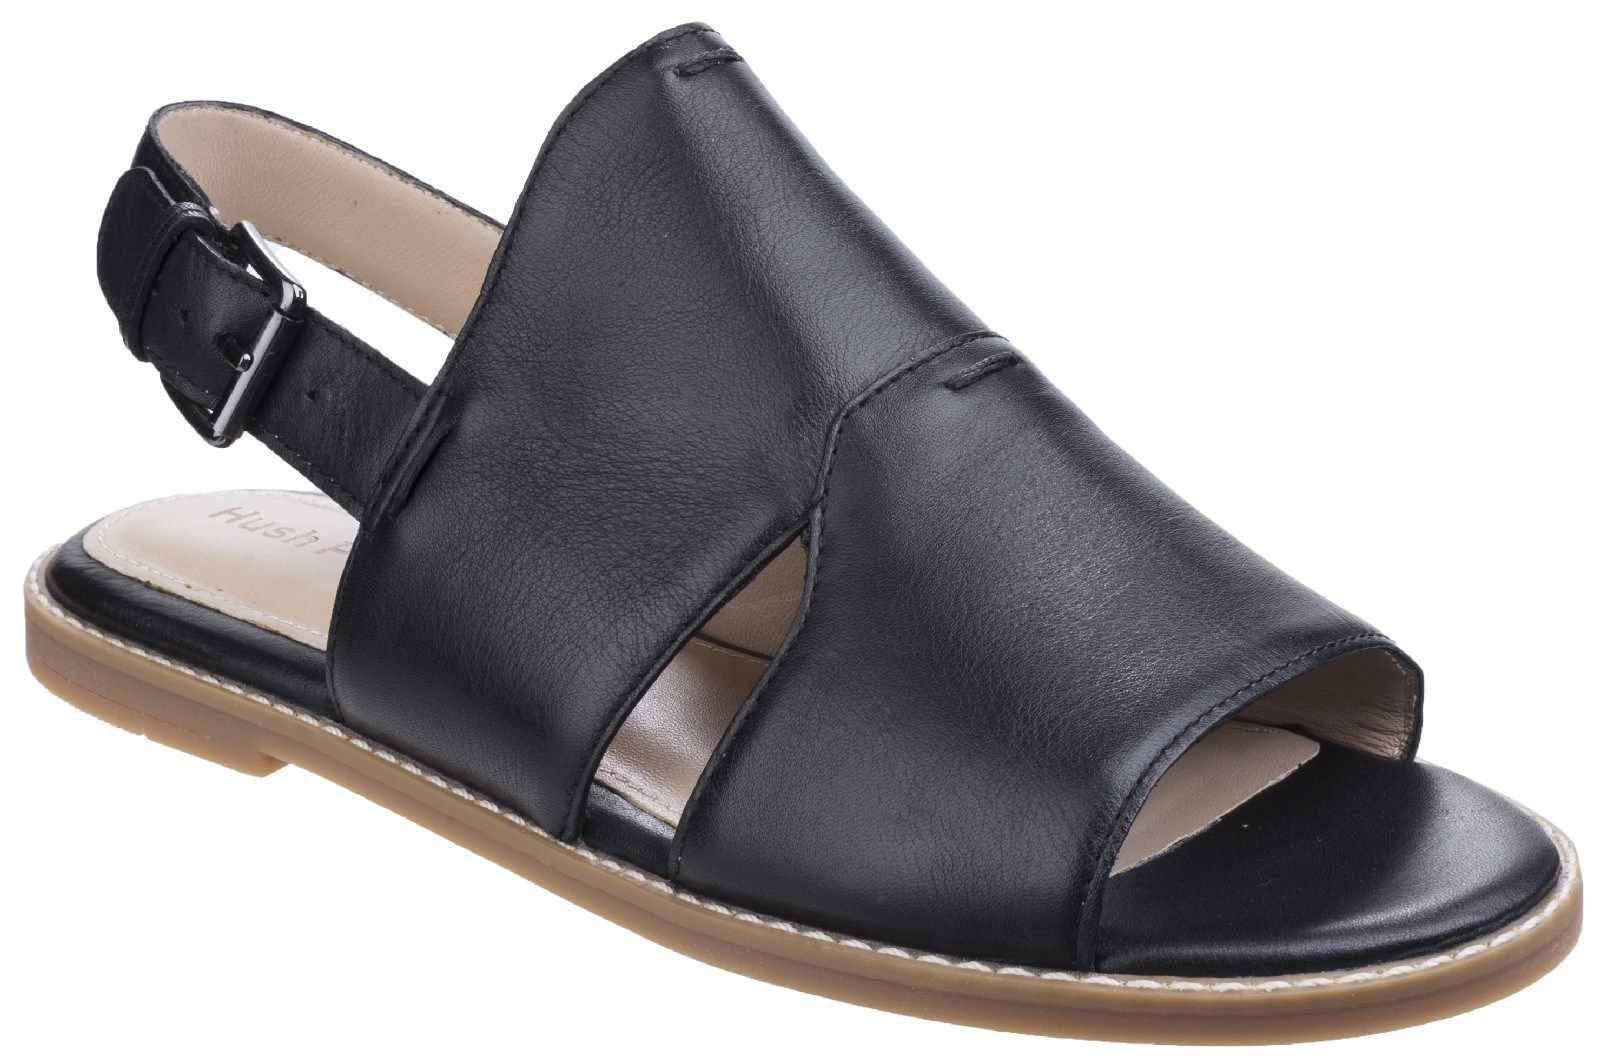 Hush Puppies Adiron chrissie buckle sandals Black